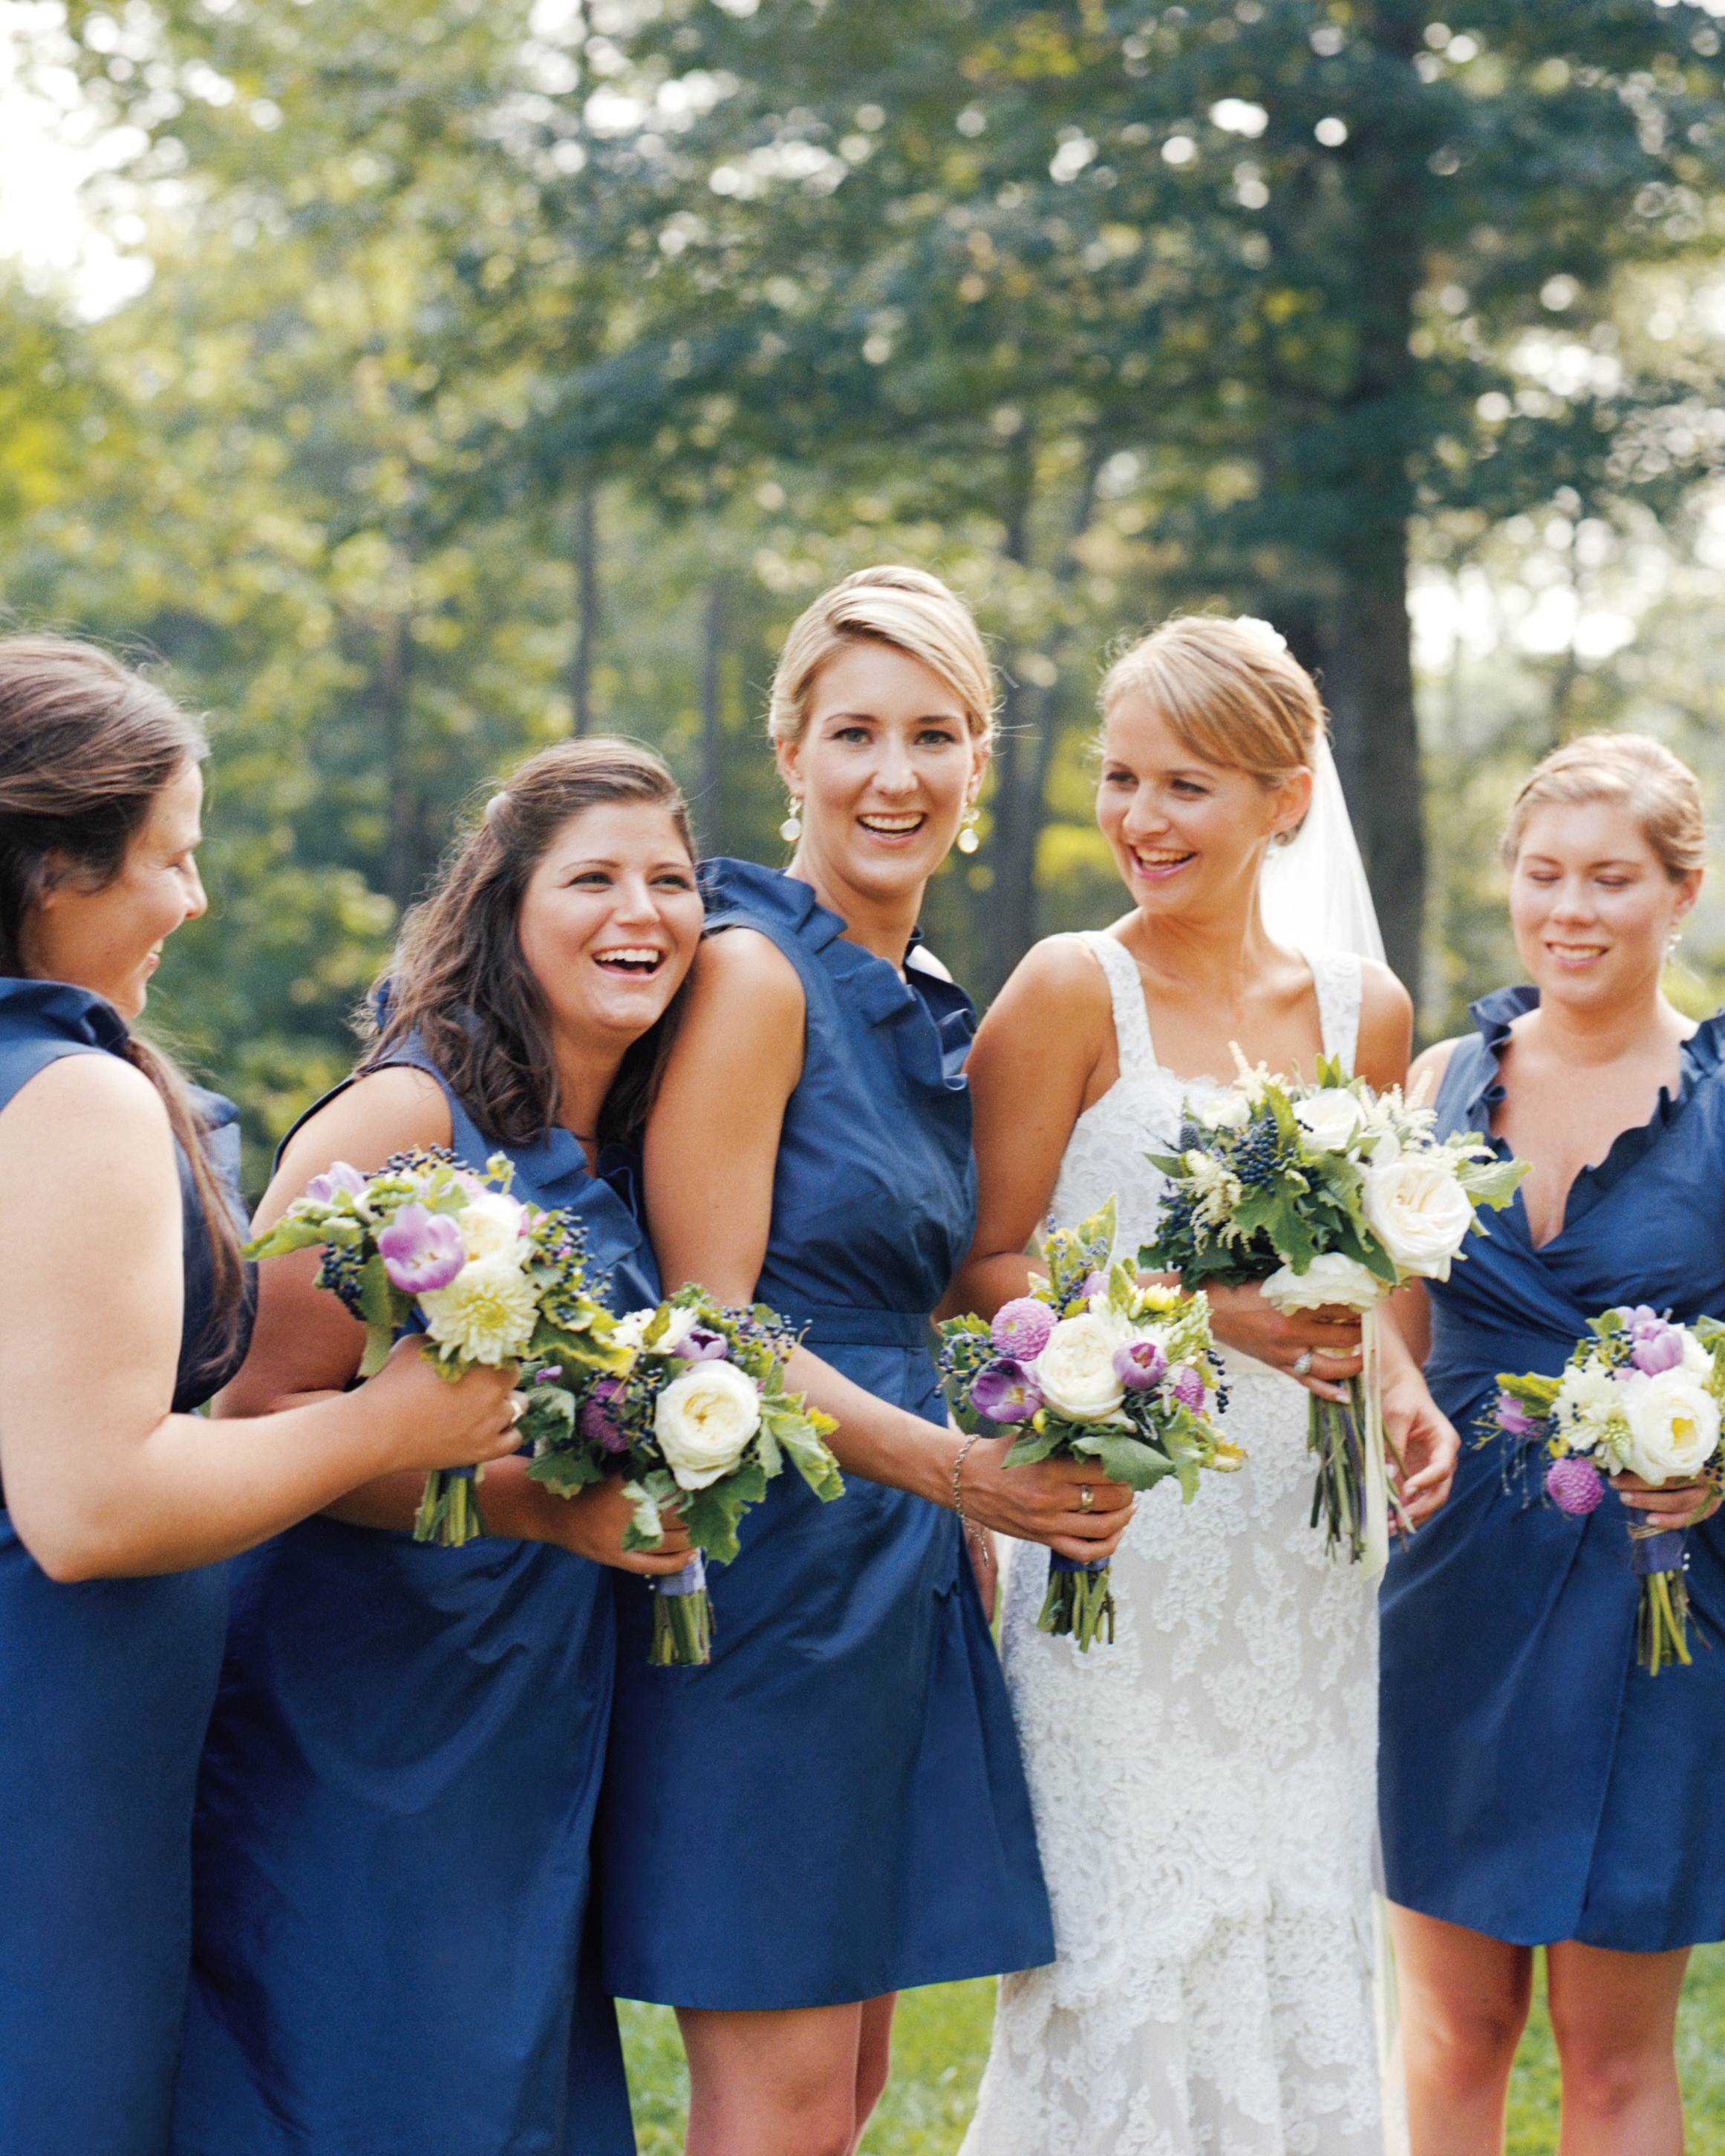 bridal-party-mwd107926.jpg